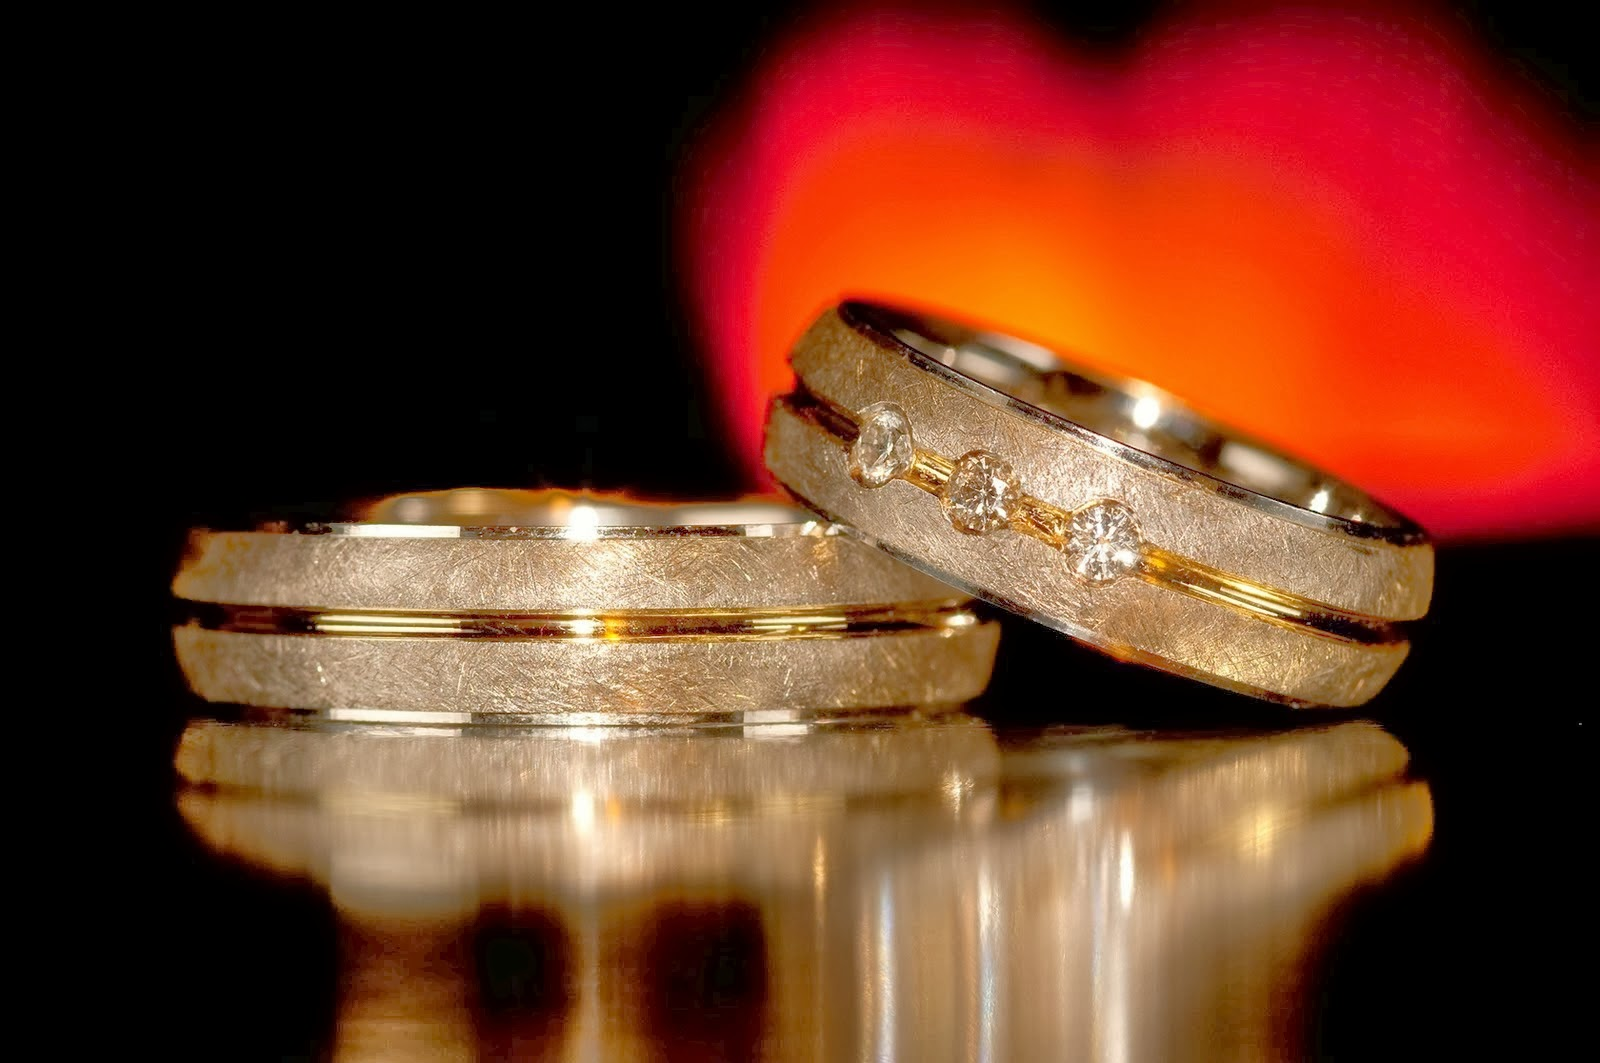 wedding ring, free stock photos | pictures in stitches